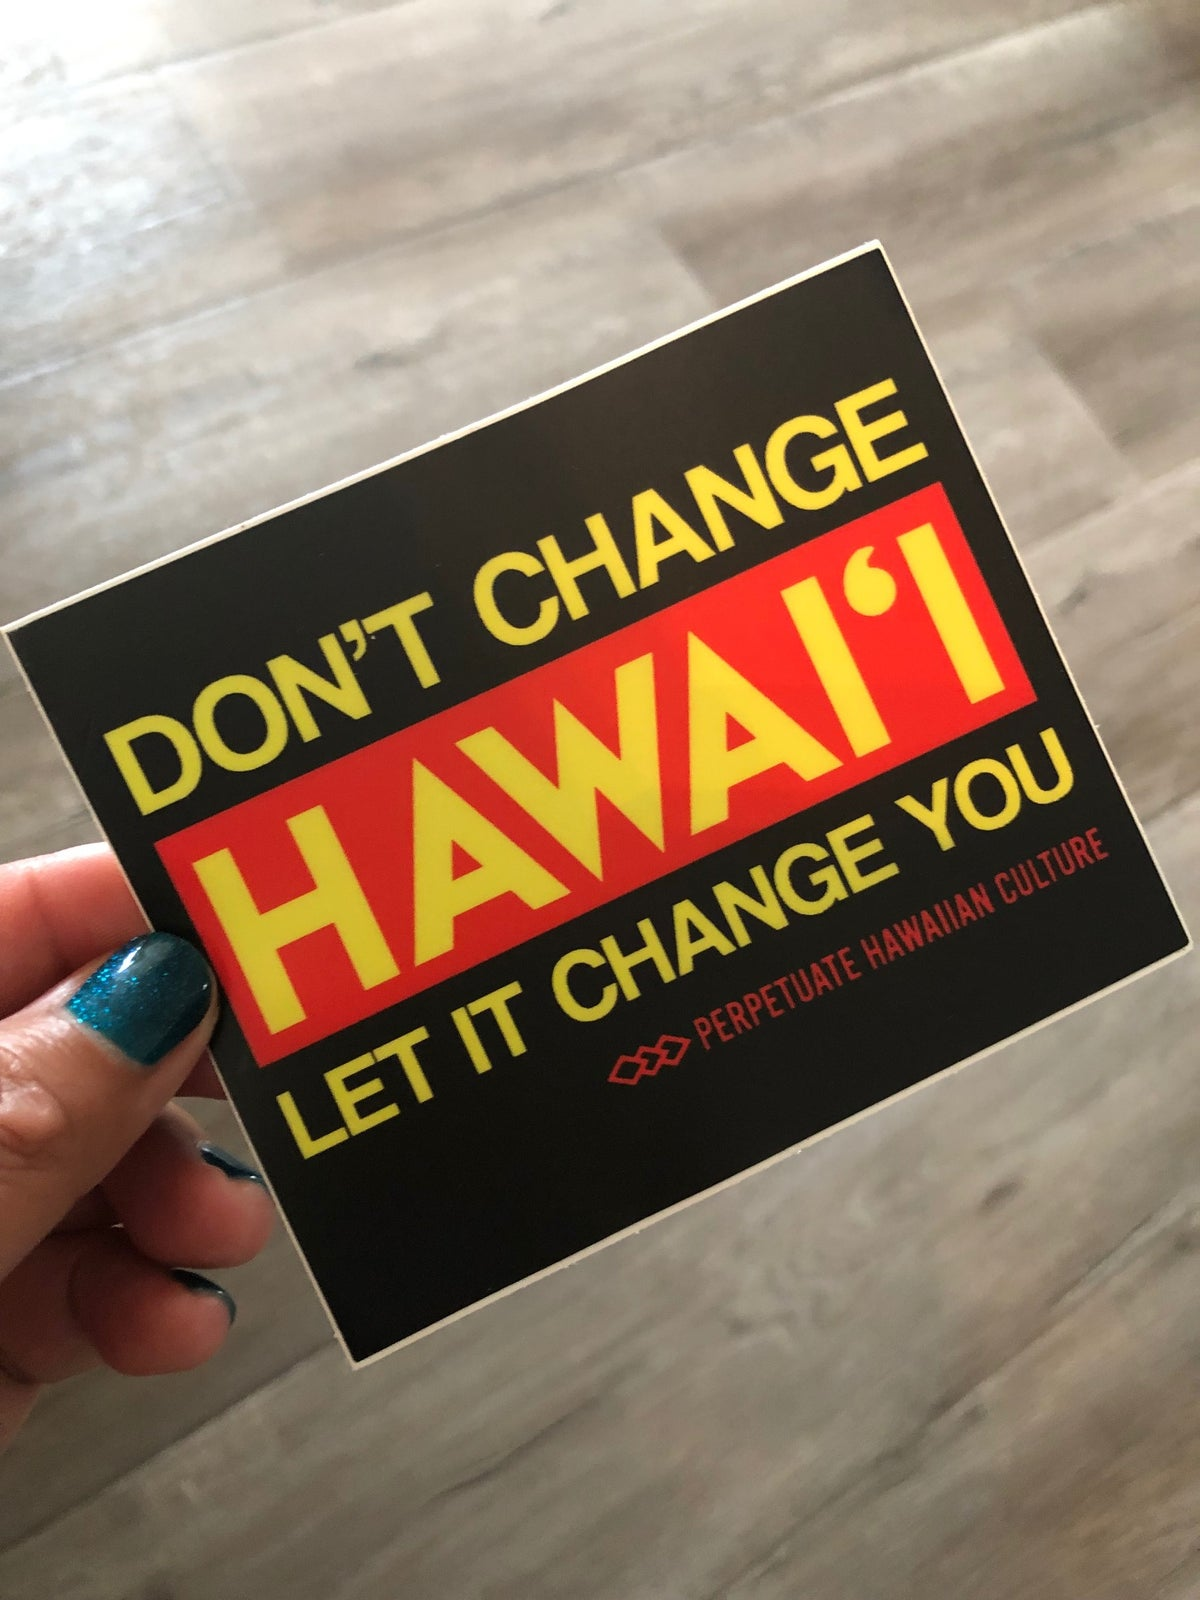 Image of Don't Change Hawai'i Sticker